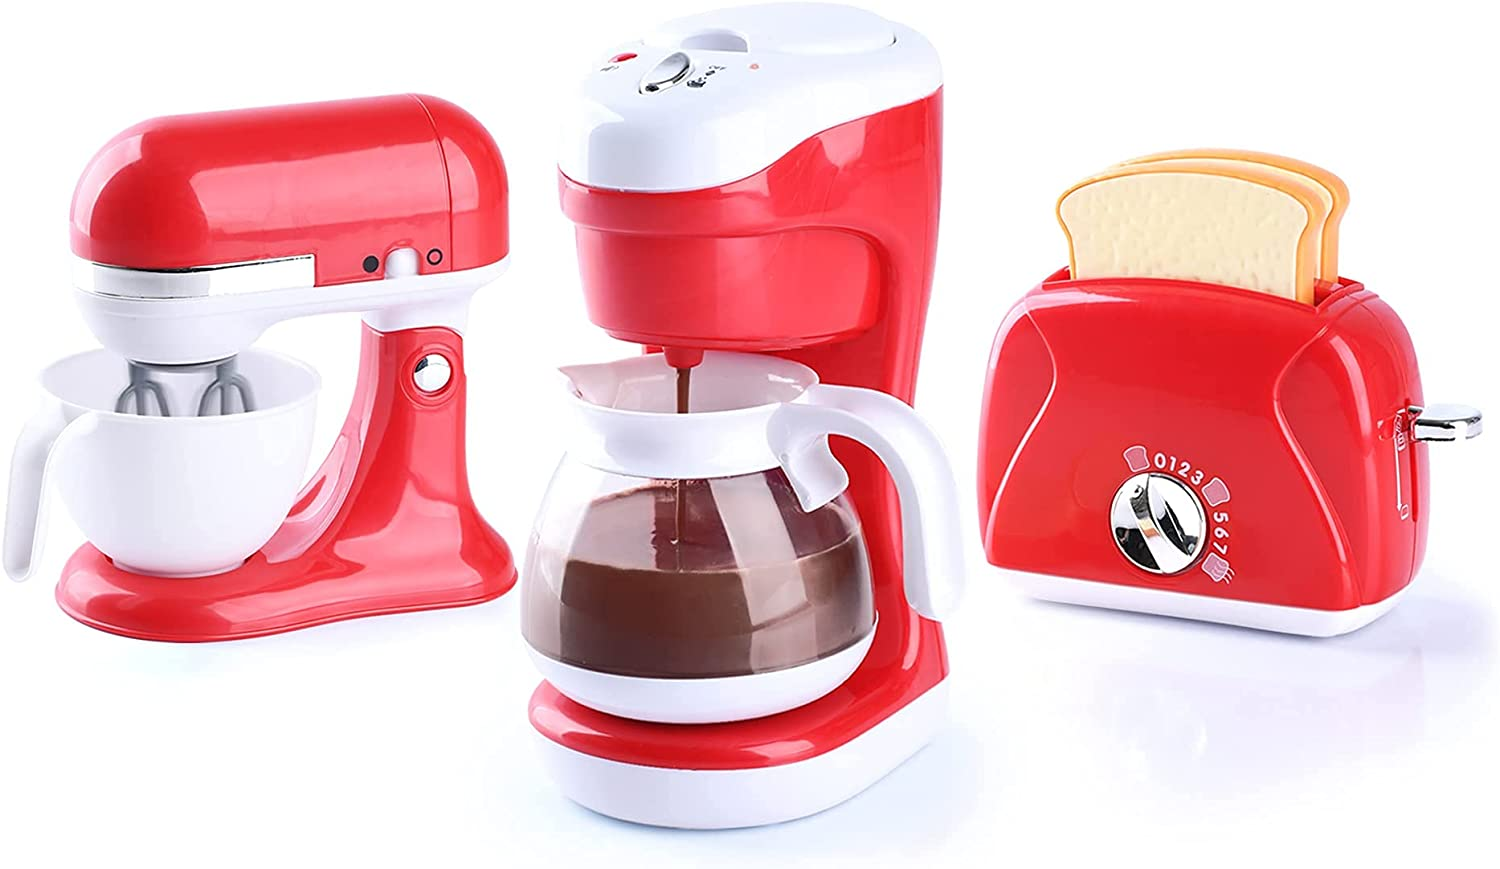 Play Toy Kitchen Sets for Kids, Kitchen Pretend Play Set - Toaster, Coffee Maker and Mixer with Realistic Sound, Light and Action for Toddlers Imaginary Cooking Role Play, Birthday Gift, Age 3+, Red